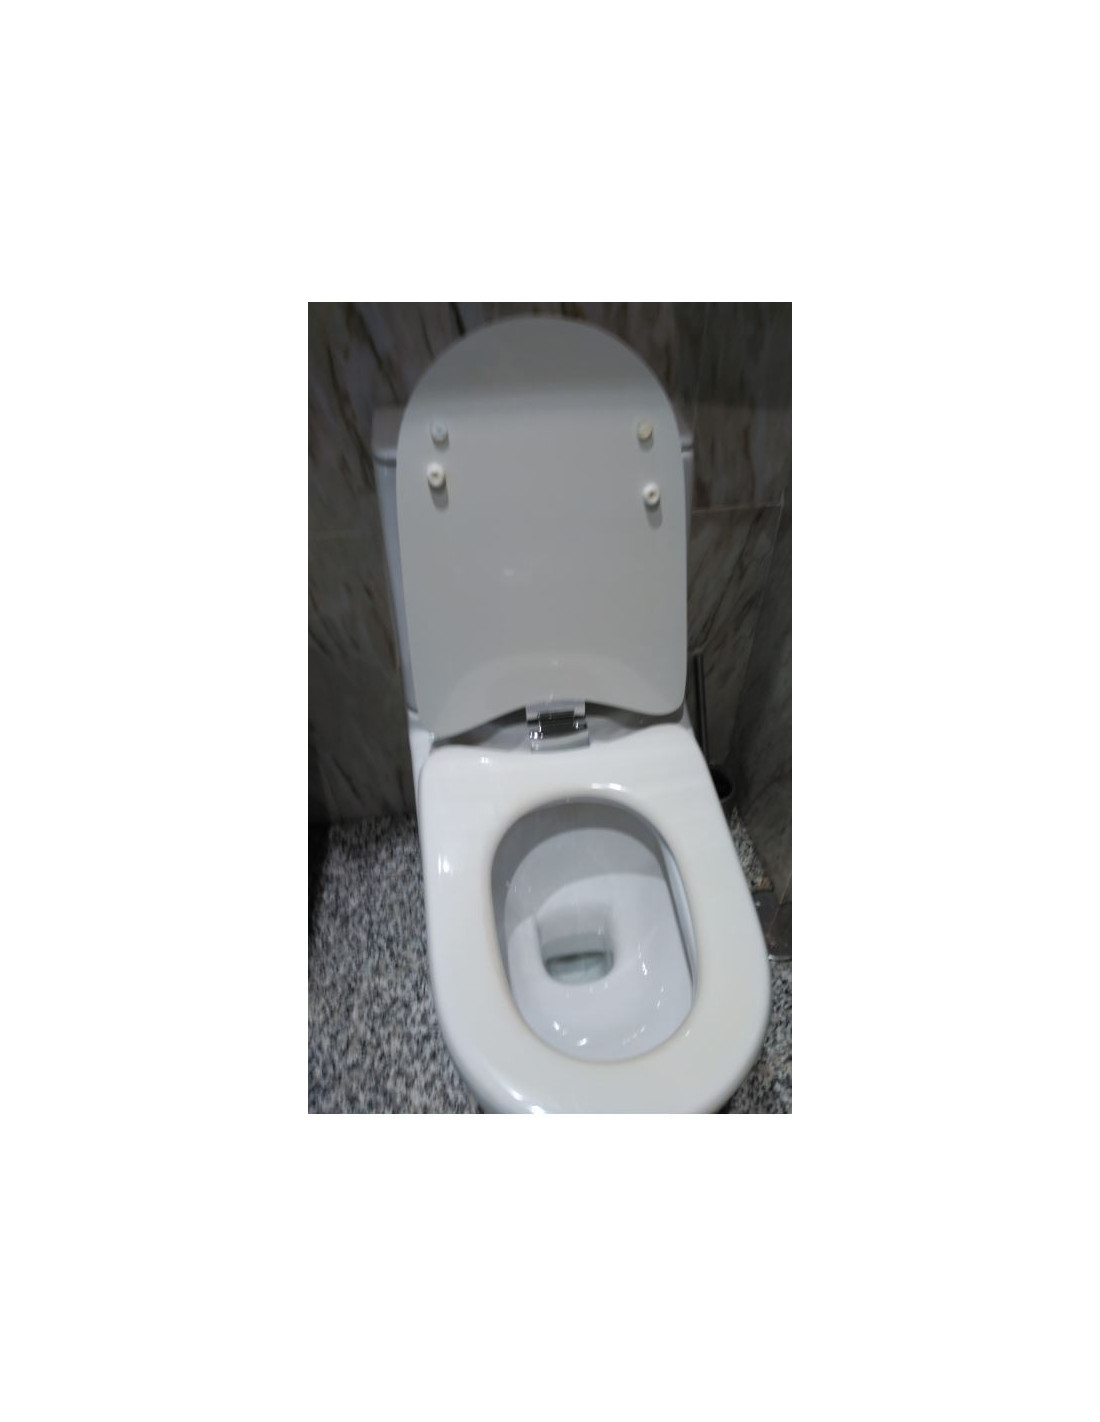 Sedile Wc Ideal Standard Diagonal.Seat Wc Ideal Standard Diagonal Adaptable Mdf Tapadelwater Com Tapa De Wc Tapa Vater